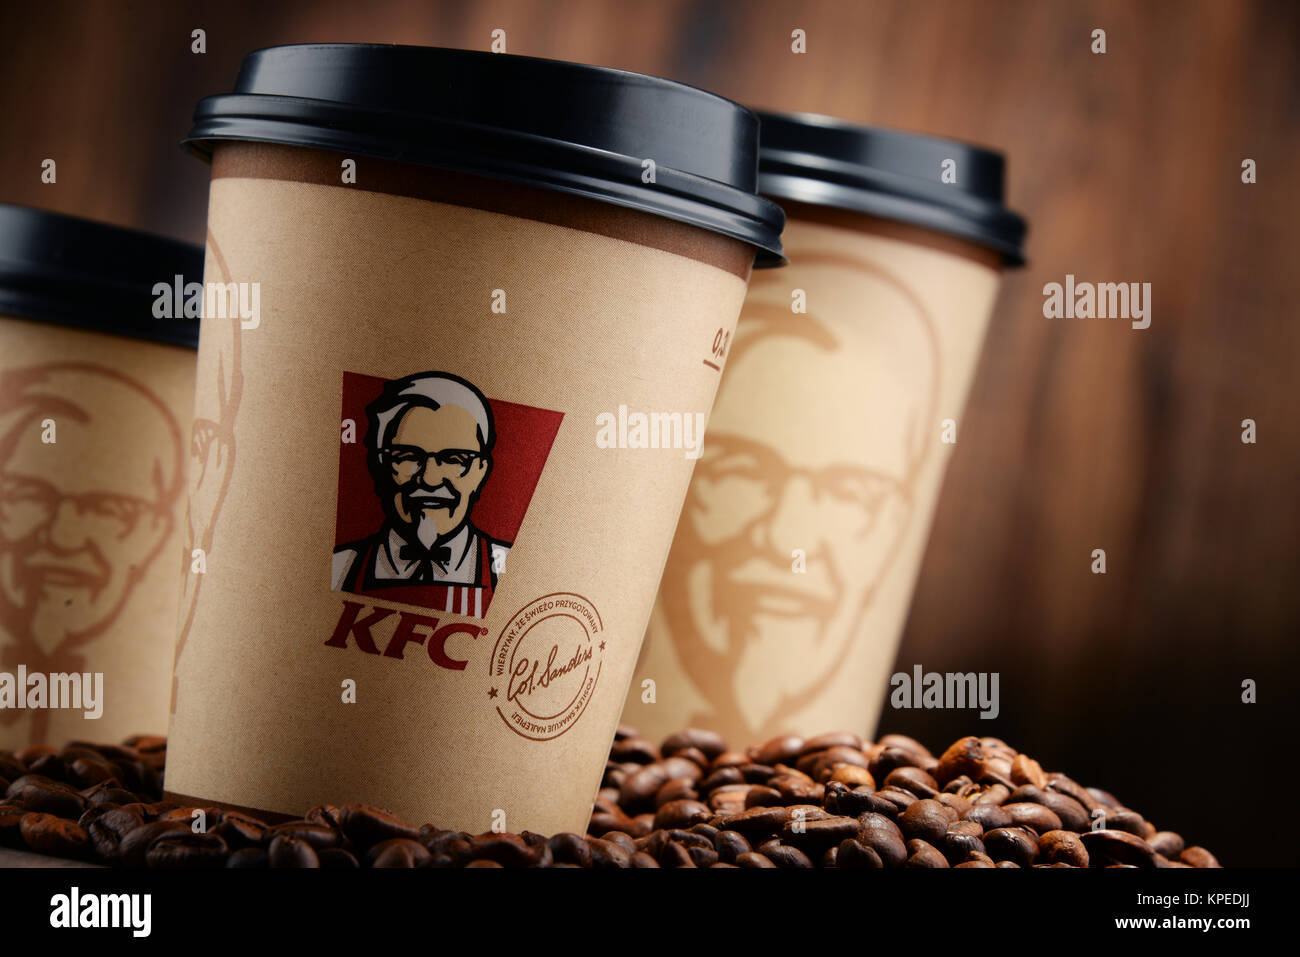 Composition with KFC coffee cup and beans - Stock Image